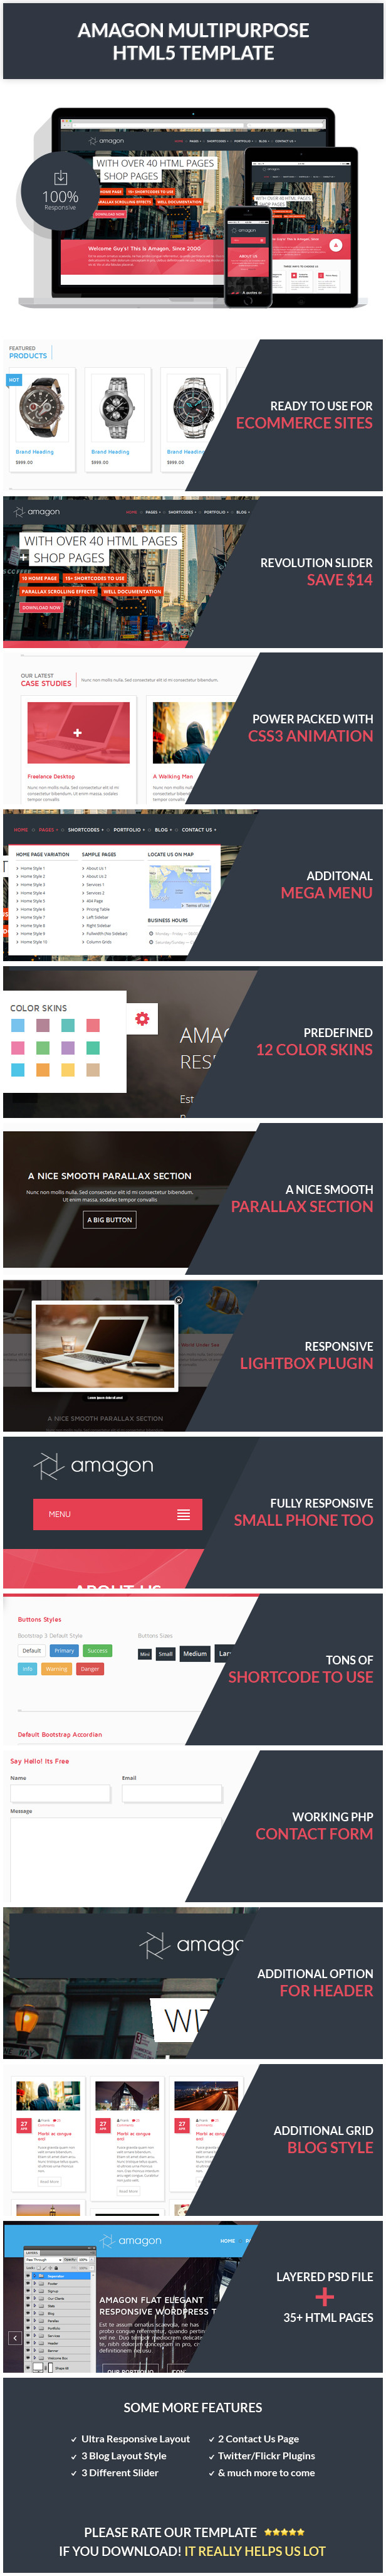 Amagon: Bootstrap Flat Multipurpose HTML5 Template by mannatstudio